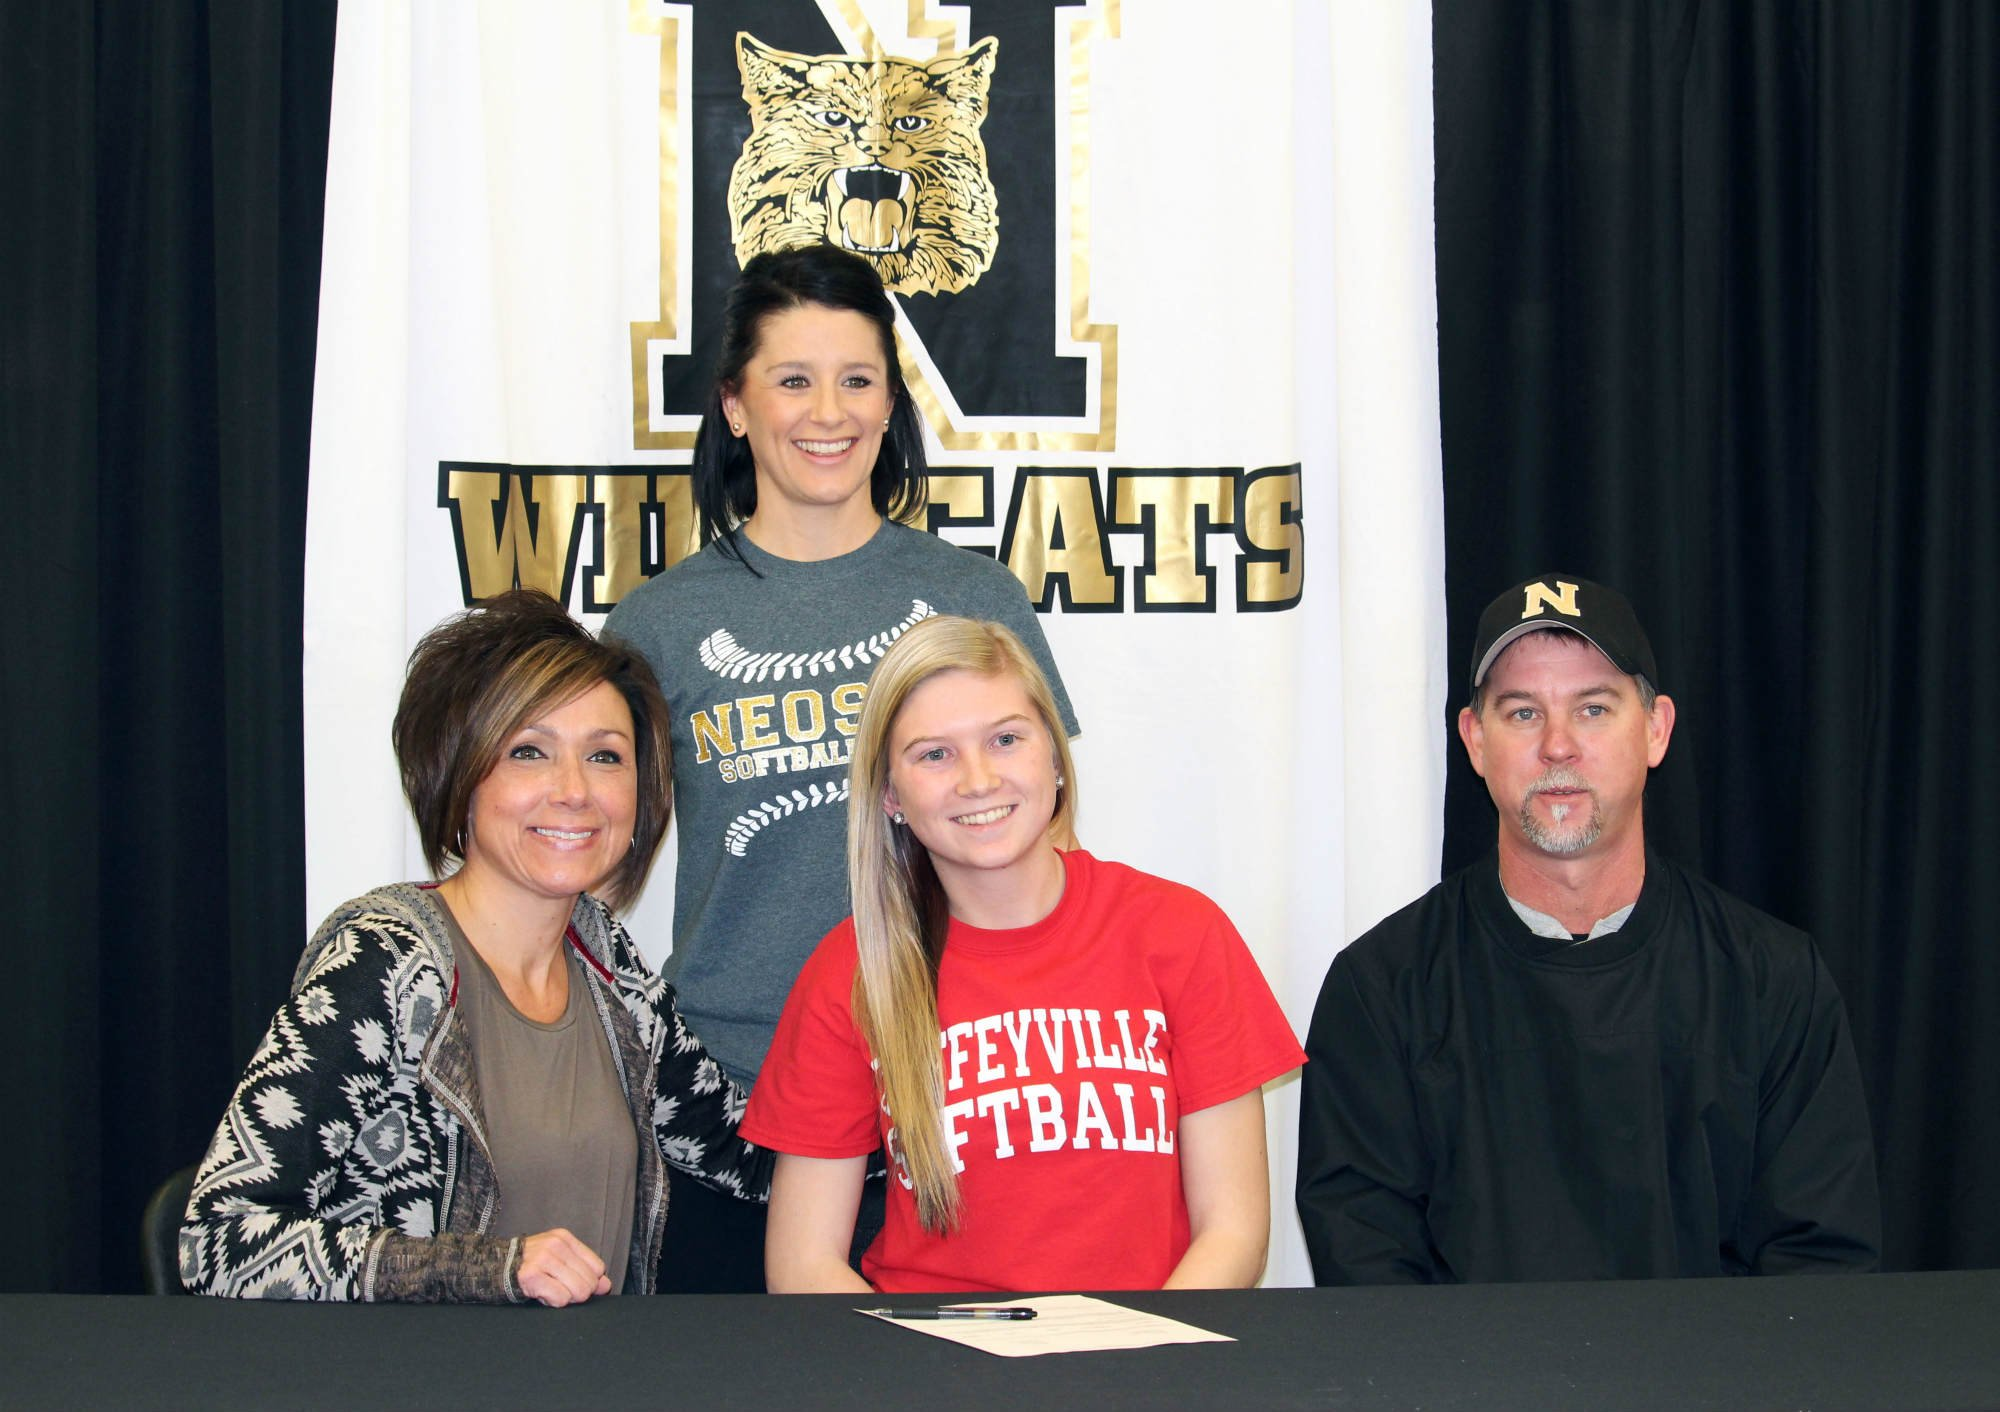 Kylie Bach signing w/ Coffeyville CC